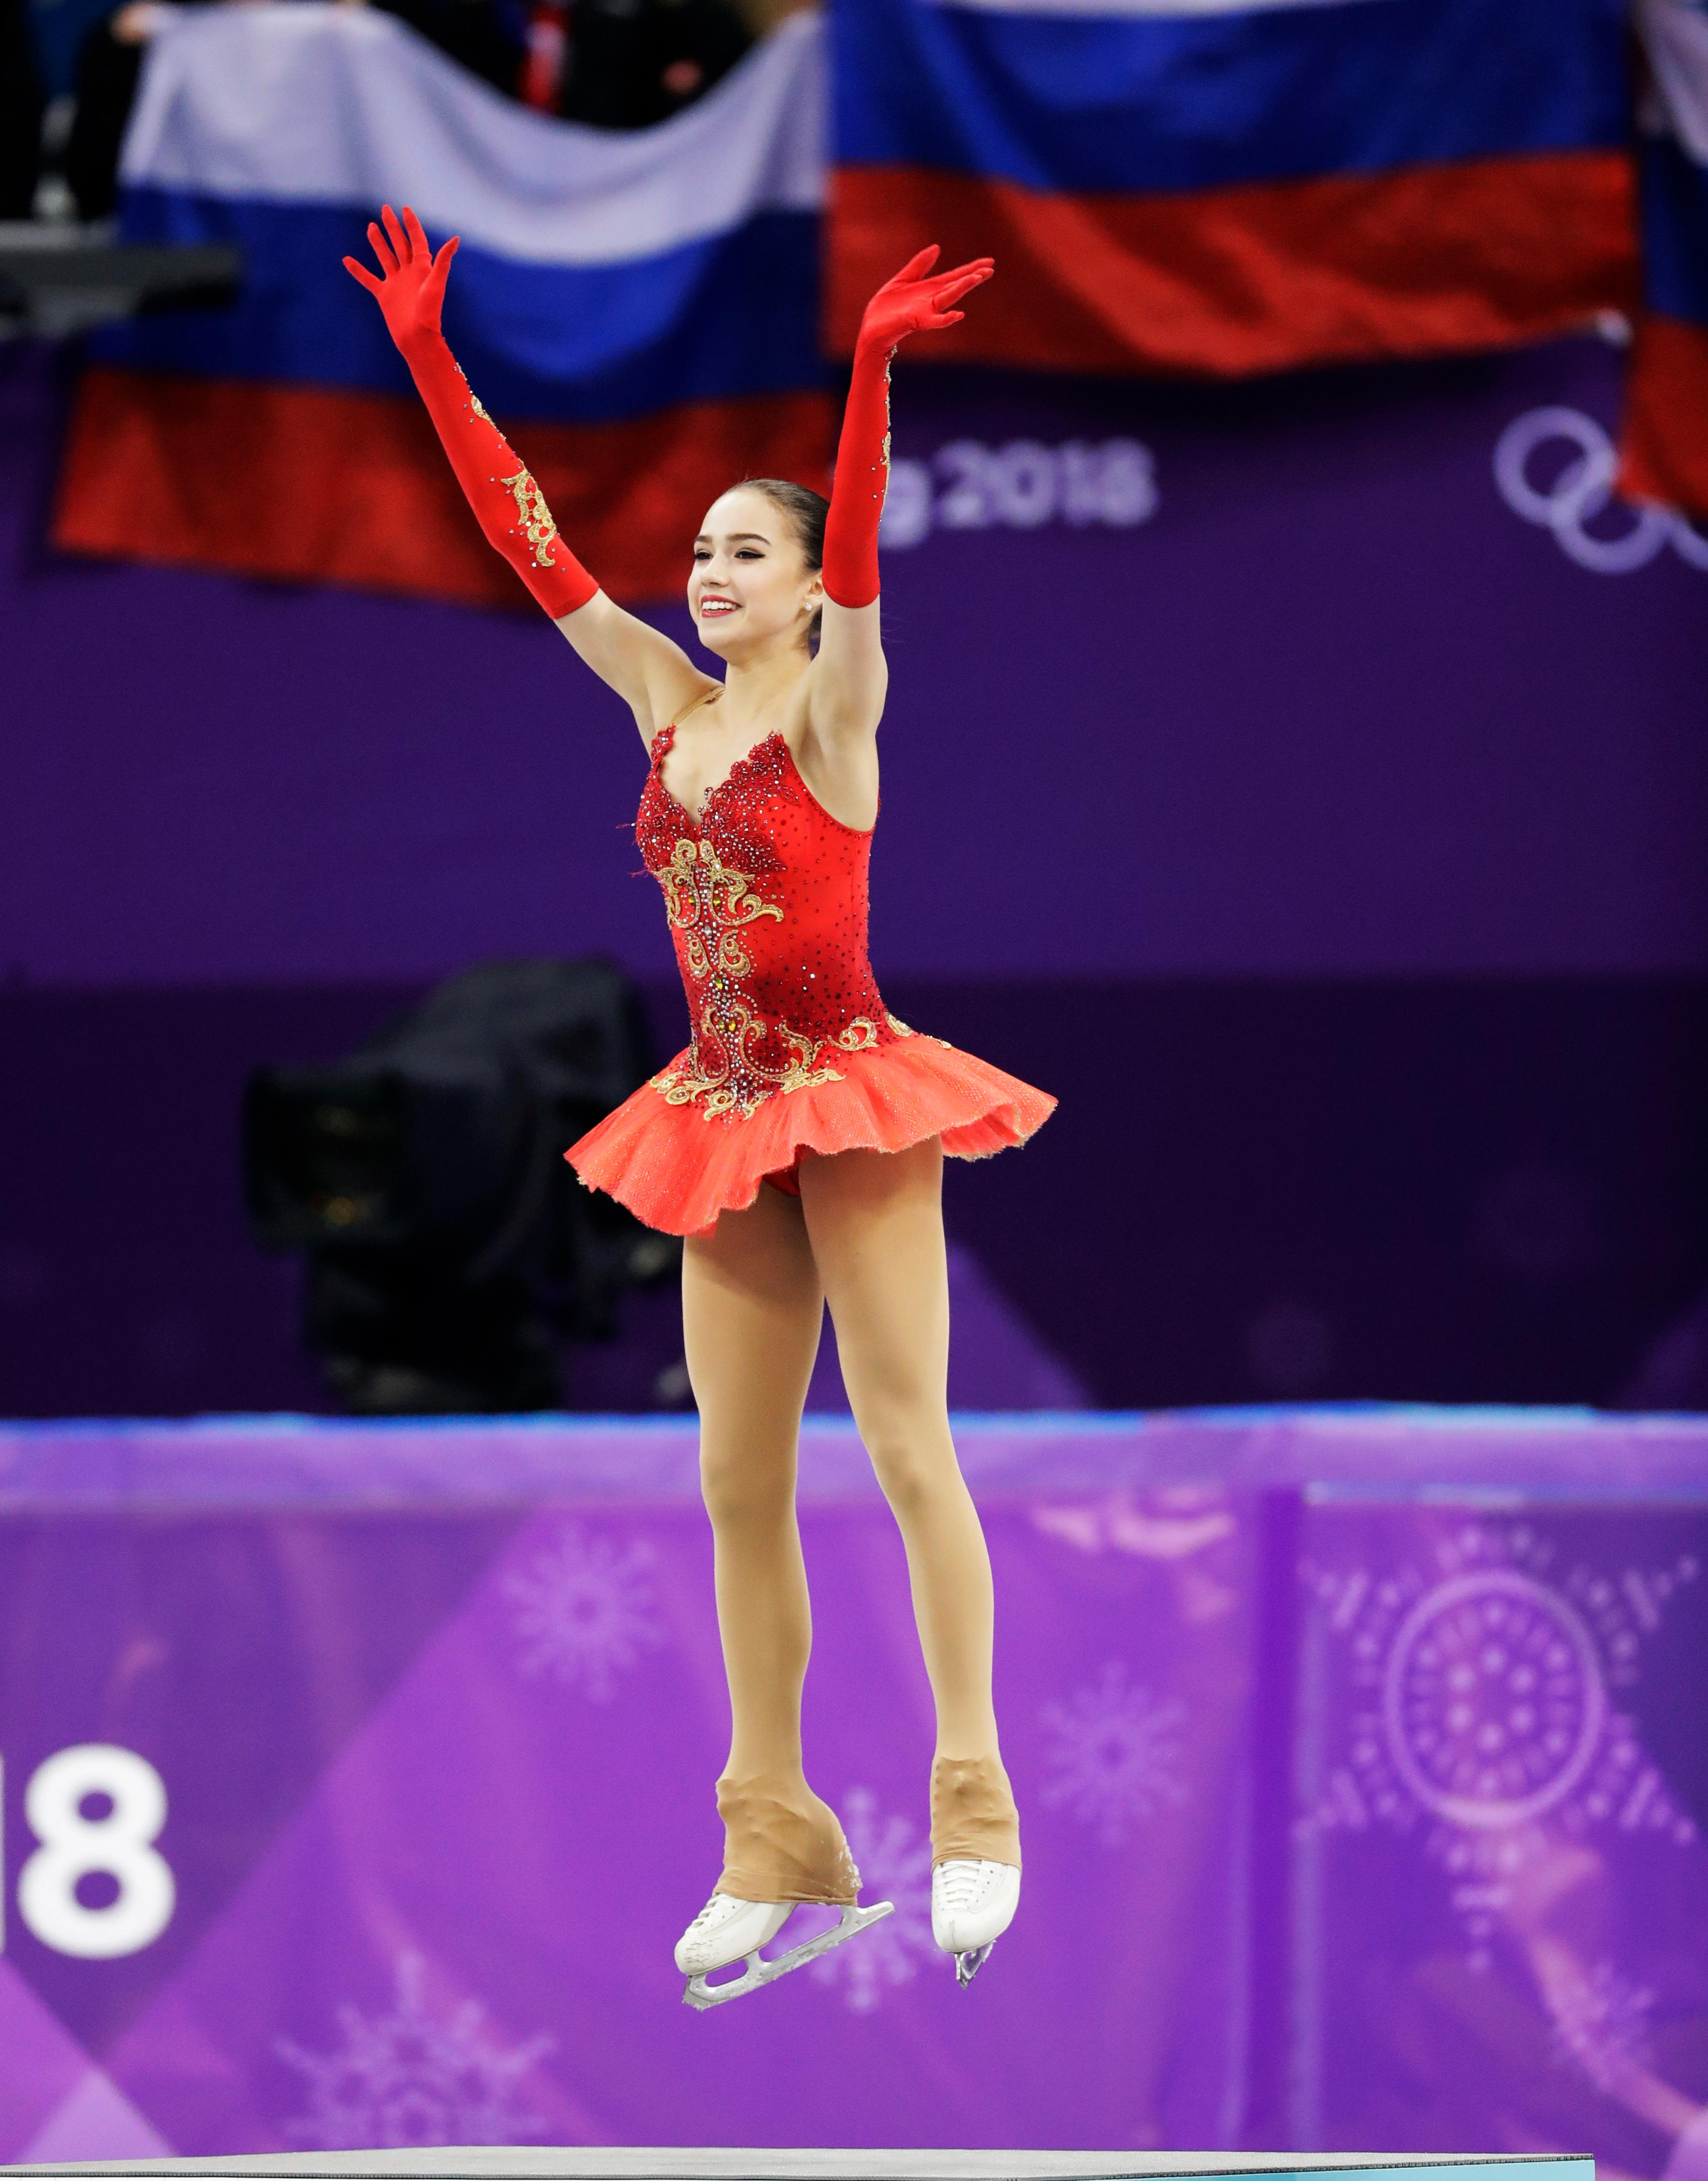 Alina Zagitova of the Olympic Athletes of Russia celebrates on the podium after winning the gold medal in the women's free figure skating final in the Gangneung Ice Arena at the 2018 Winter Olympics in Gangneung, South Korea, Friday, Feb. 23, 2018. (AP Photo/Bernat Armangue)